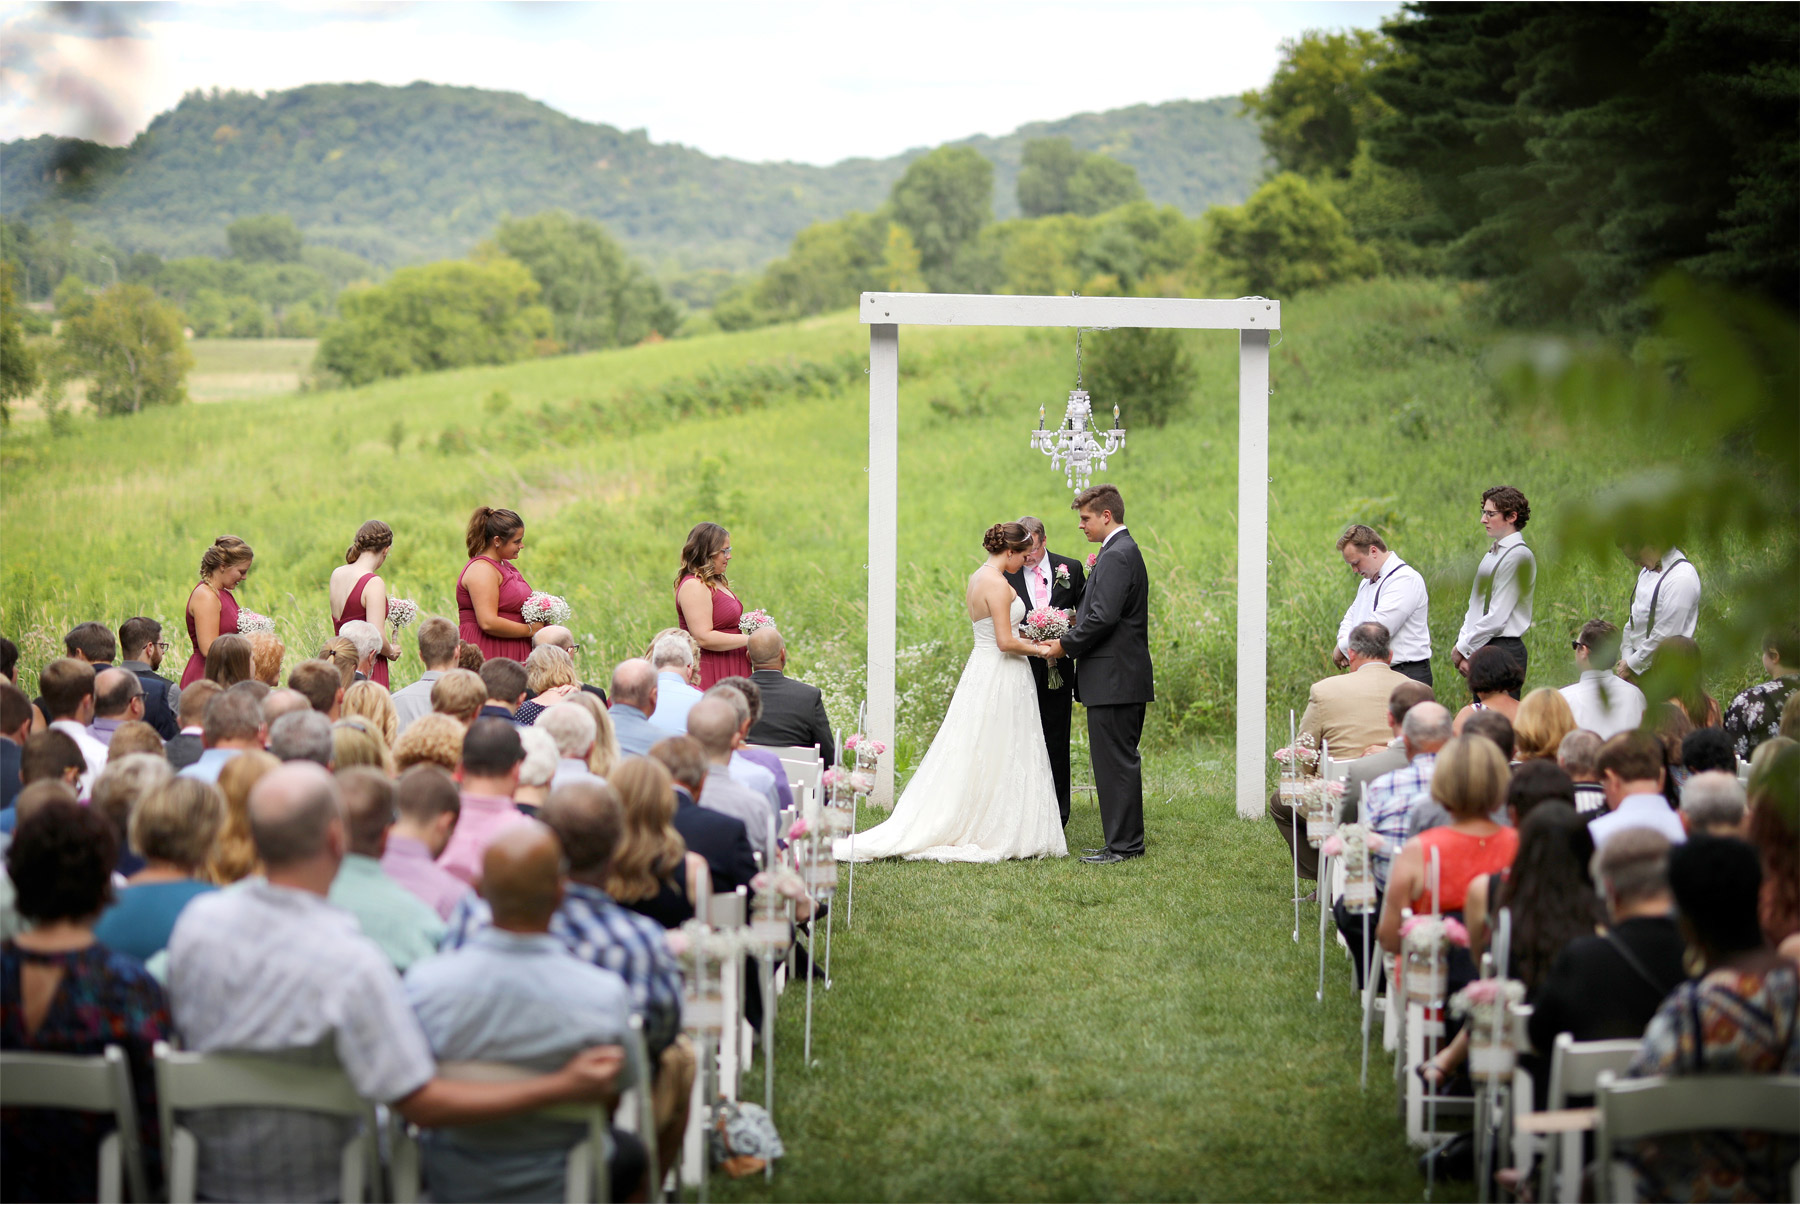 08-Red-Wing-Minnesota-Wedding-Photography-by-Vick-Photography-Round-Barn-Farm-Ceremony-Outside-Outdoor-Nikki-and-Will.jpg